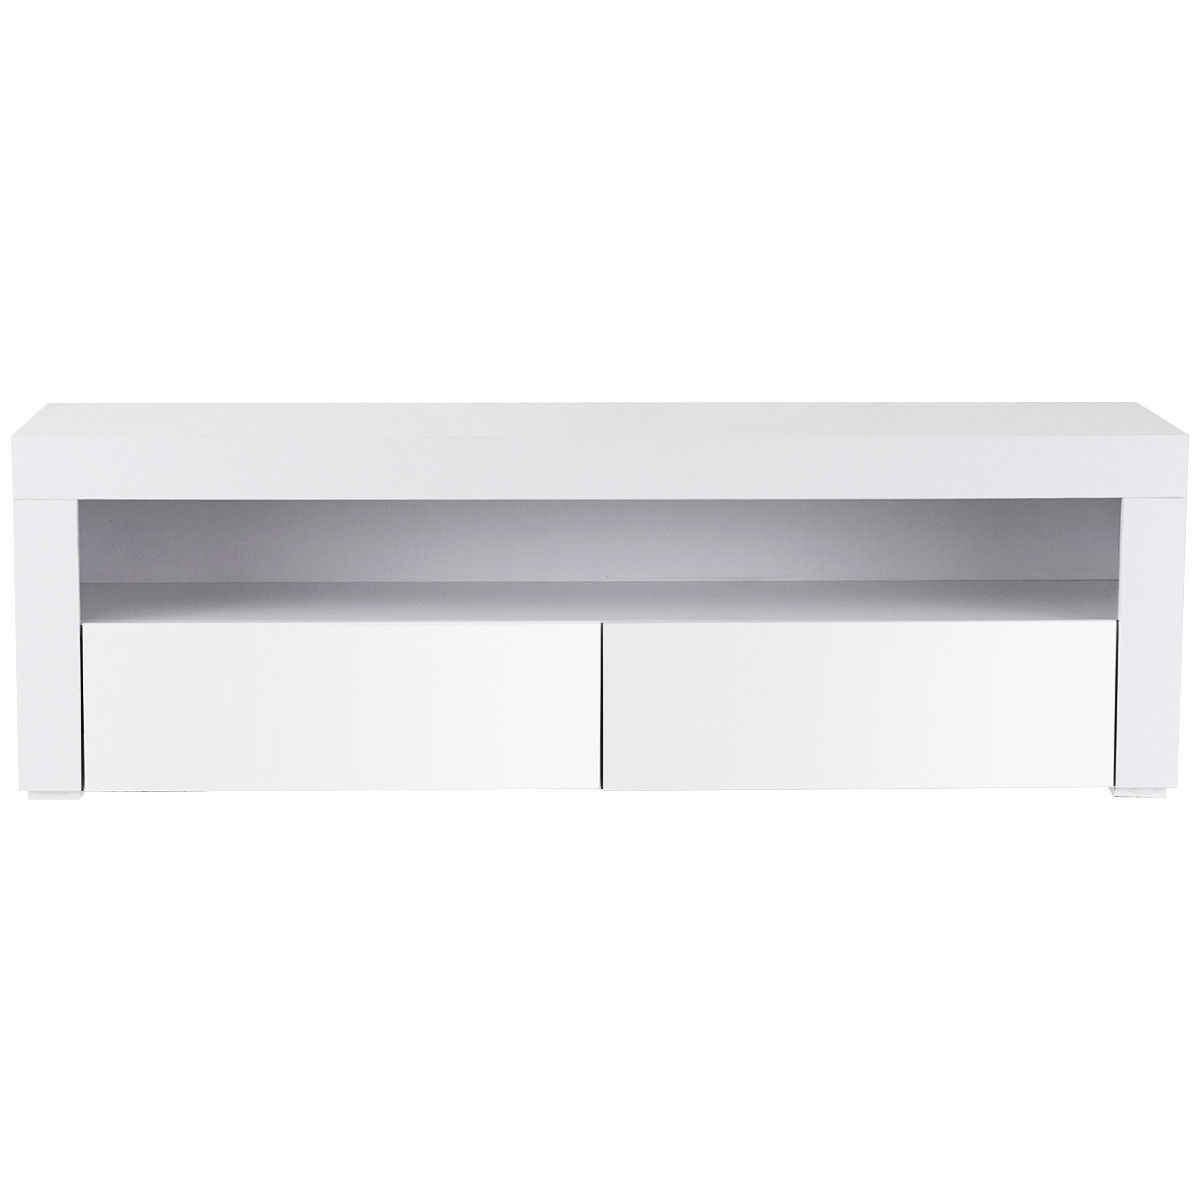 Off White Tv Meubel.Giantex Living Room Tv Stand Unit Cabinet Console Furniture With Led Shelves And Drawers Modern White Tv Stand Hw56643wh